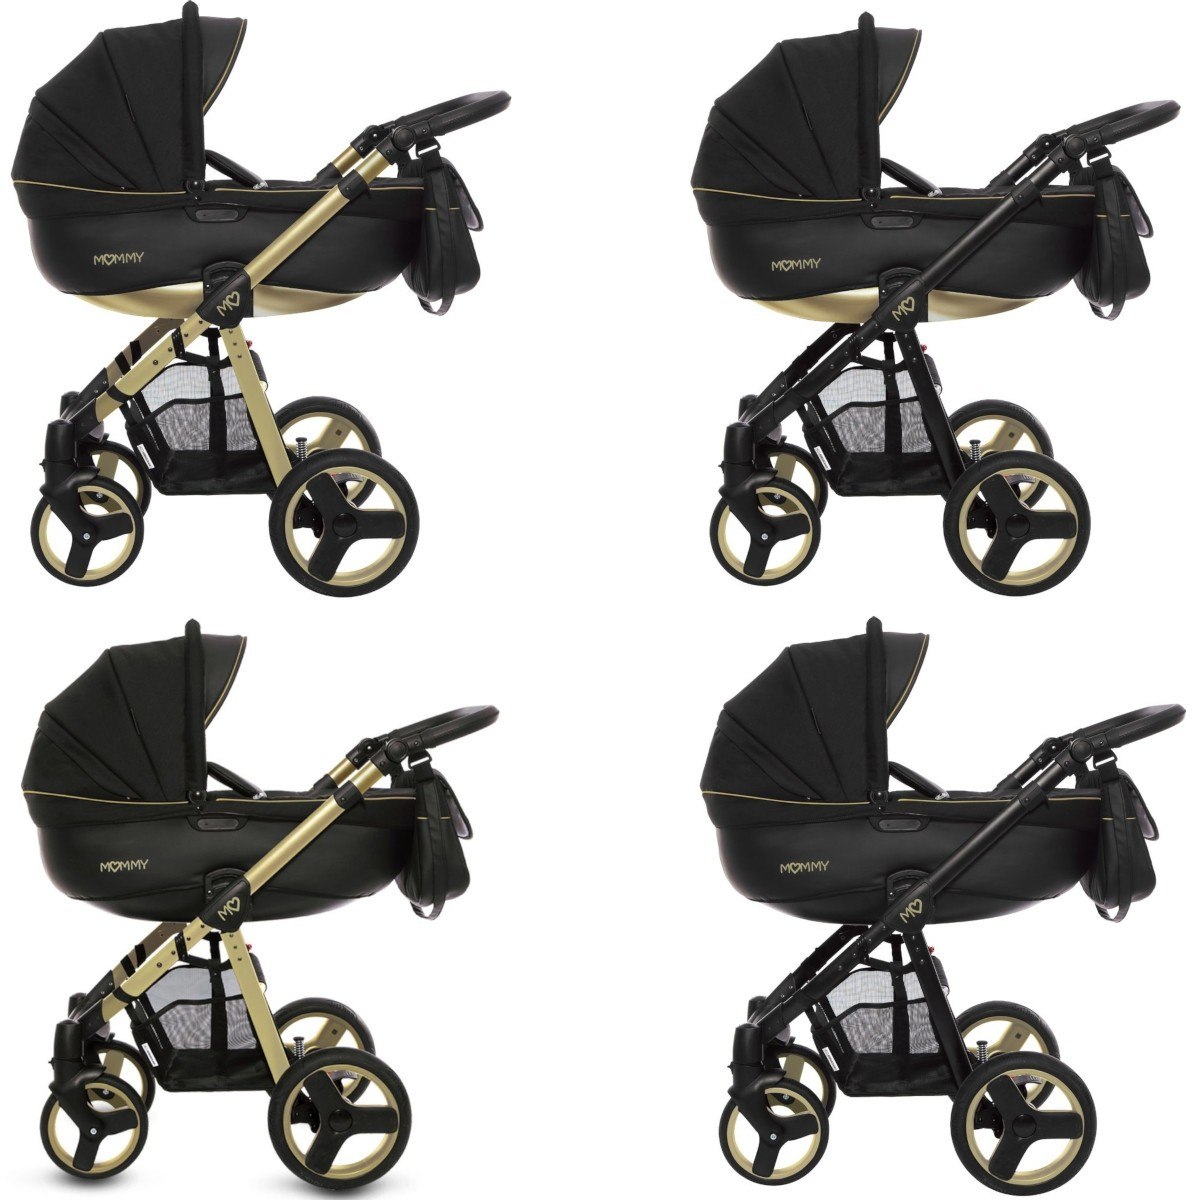 MOMMY Gold Magic Kombi Kinderwagen 2in1 mit Babywanne + Sportwagenaufsatz / Buggy oder 3in1 + Babyschale / Autoschale, 2 Farben